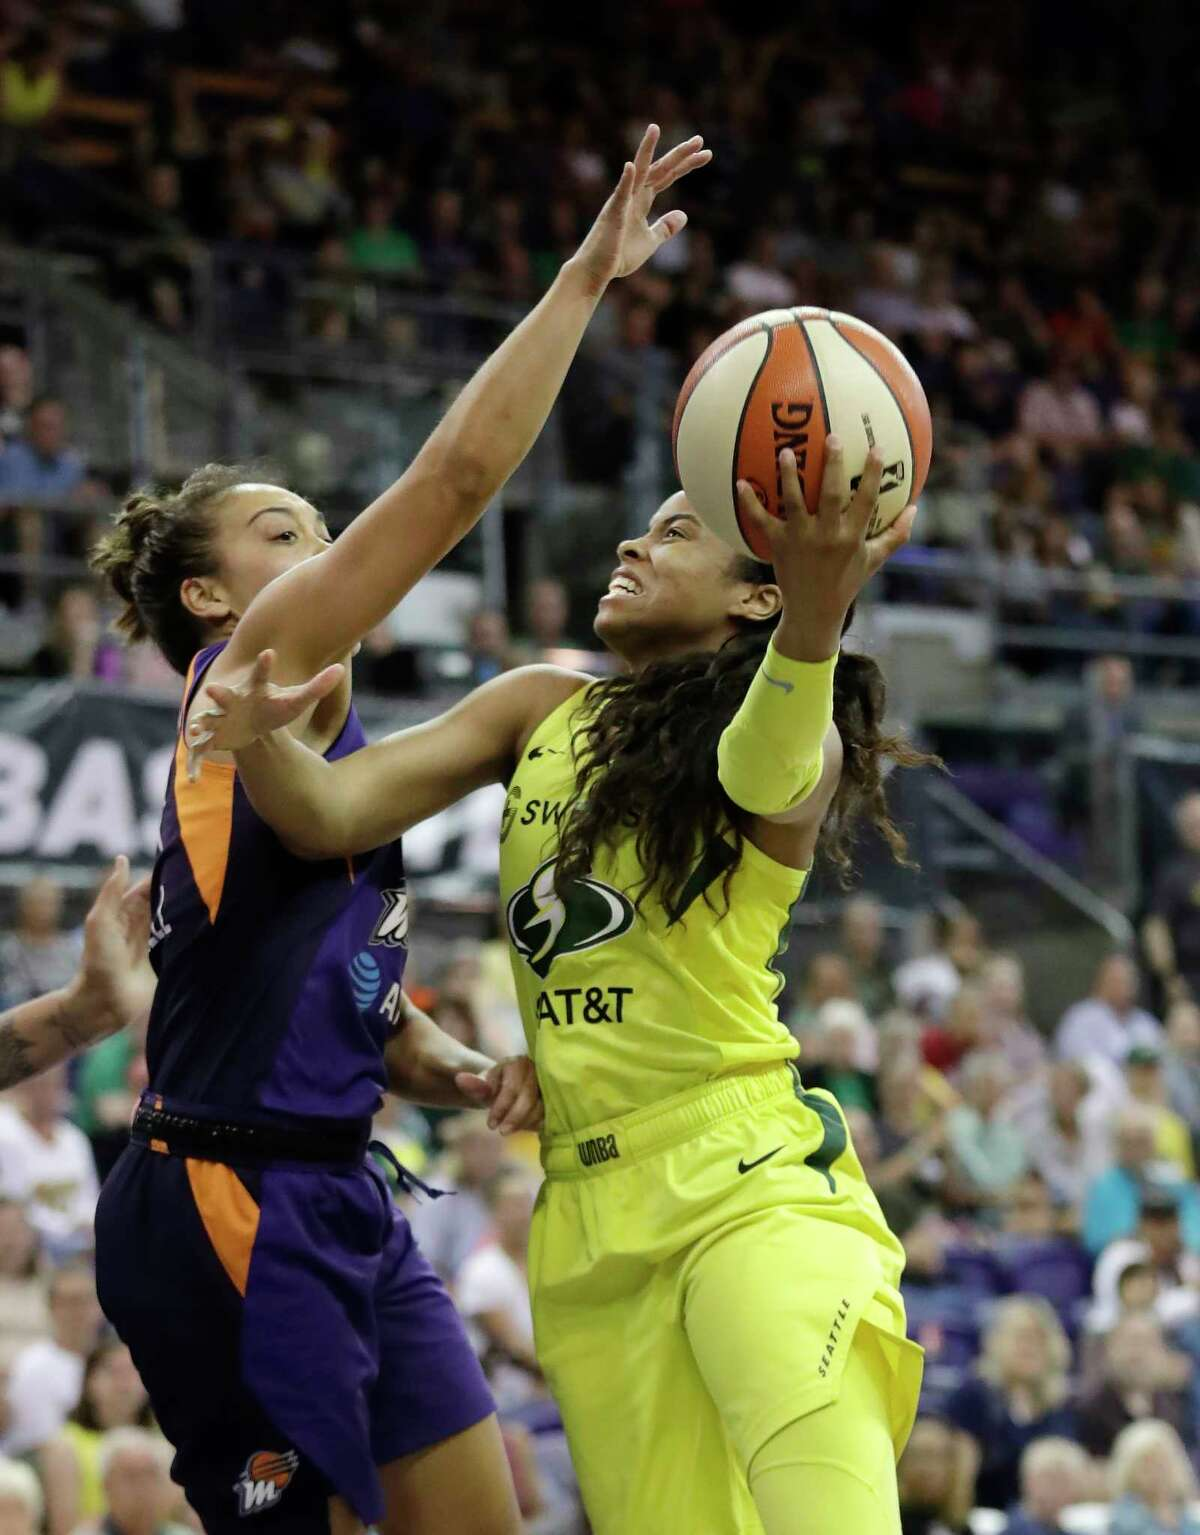 Seattle Storm's Jordin Canada, right, shoots as Phoenix Mercury's Leilani Mitchell defends in the second half of a WNBA basketball game Sunday, June 30, 2019, in Seattle. (AP Photo/Elaine Thompson)